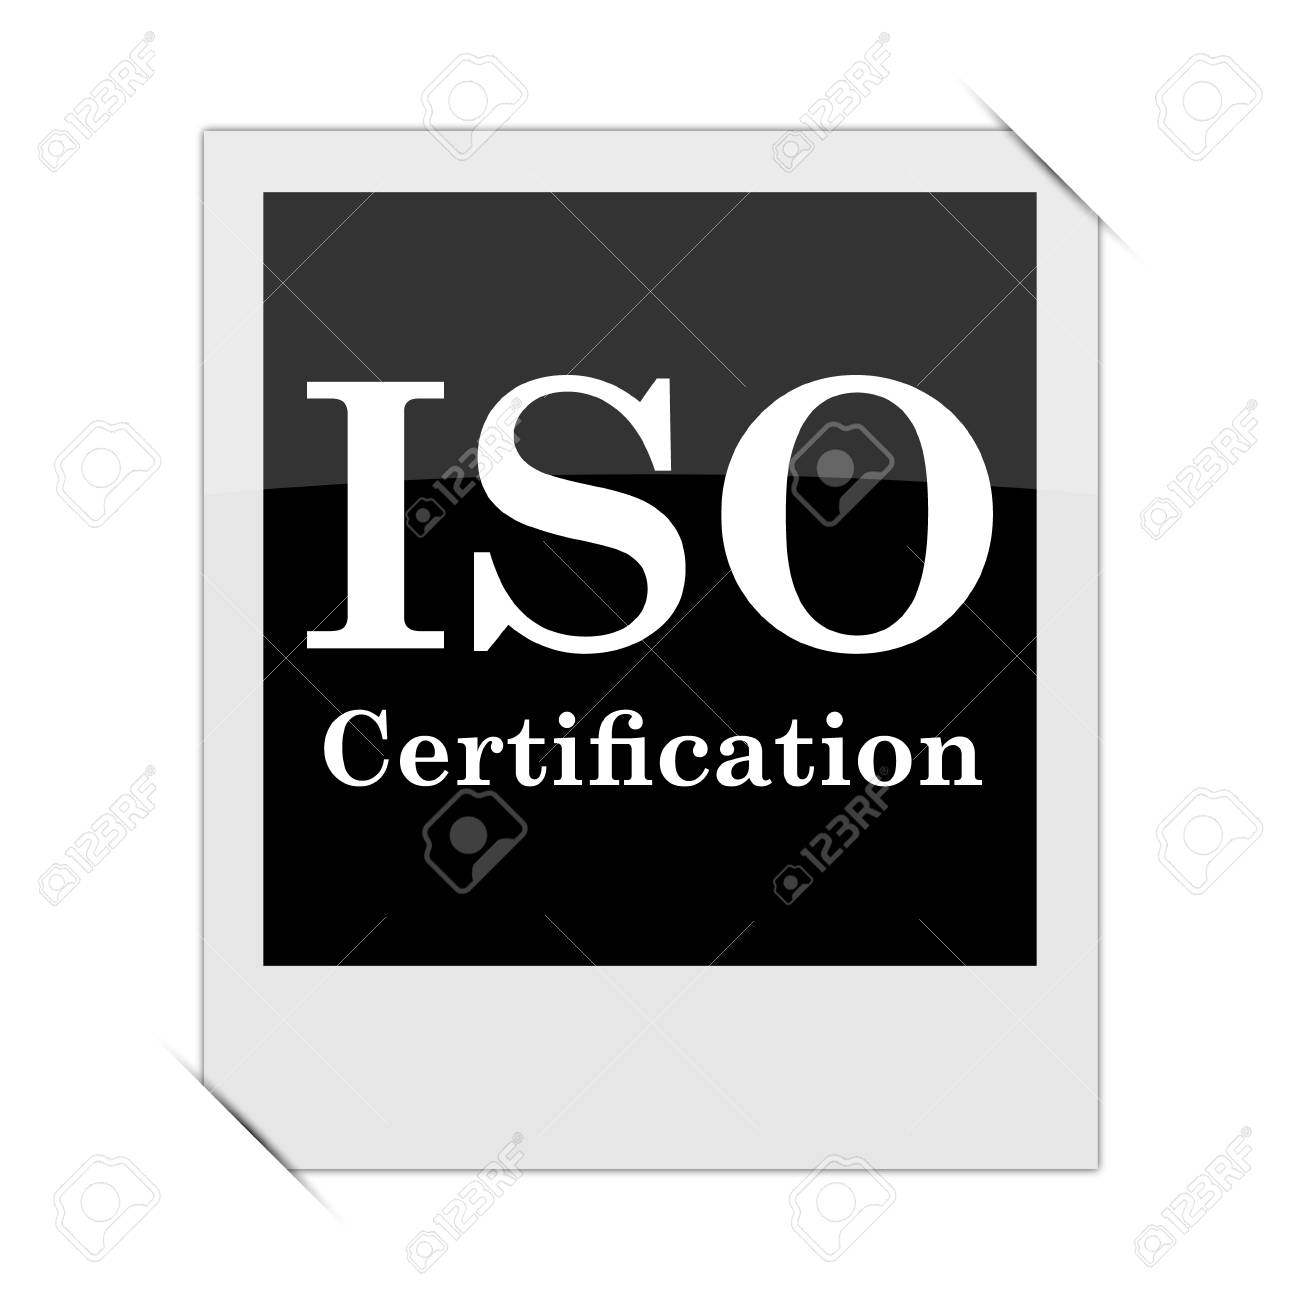 Iso Certification Icon Within A Photo On White Background Stock